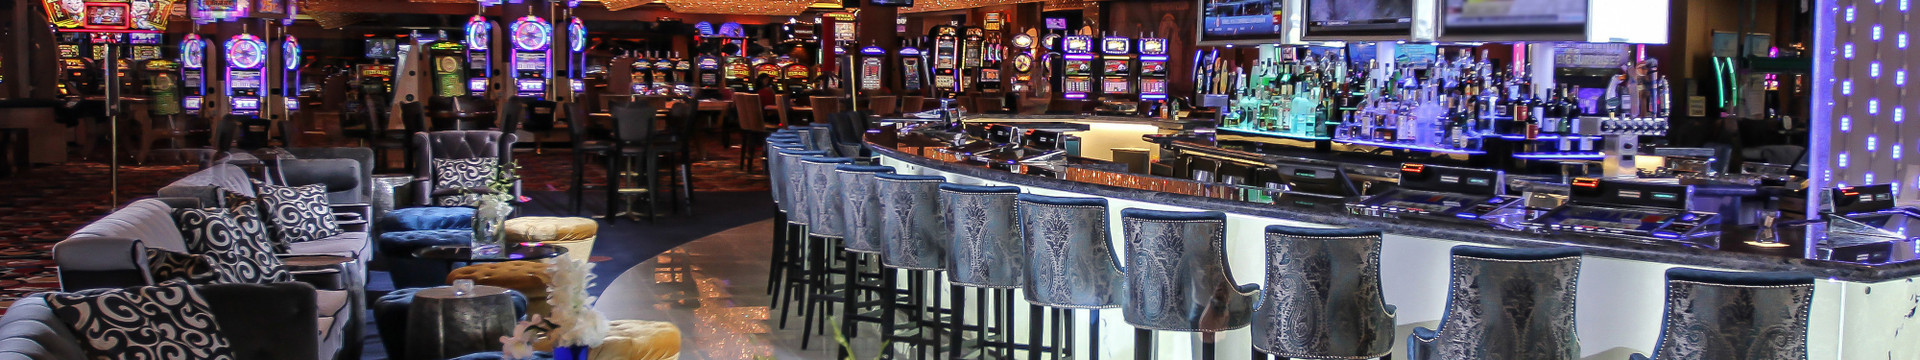 The International Bar | Westgate Las Vegas Resort & Casino